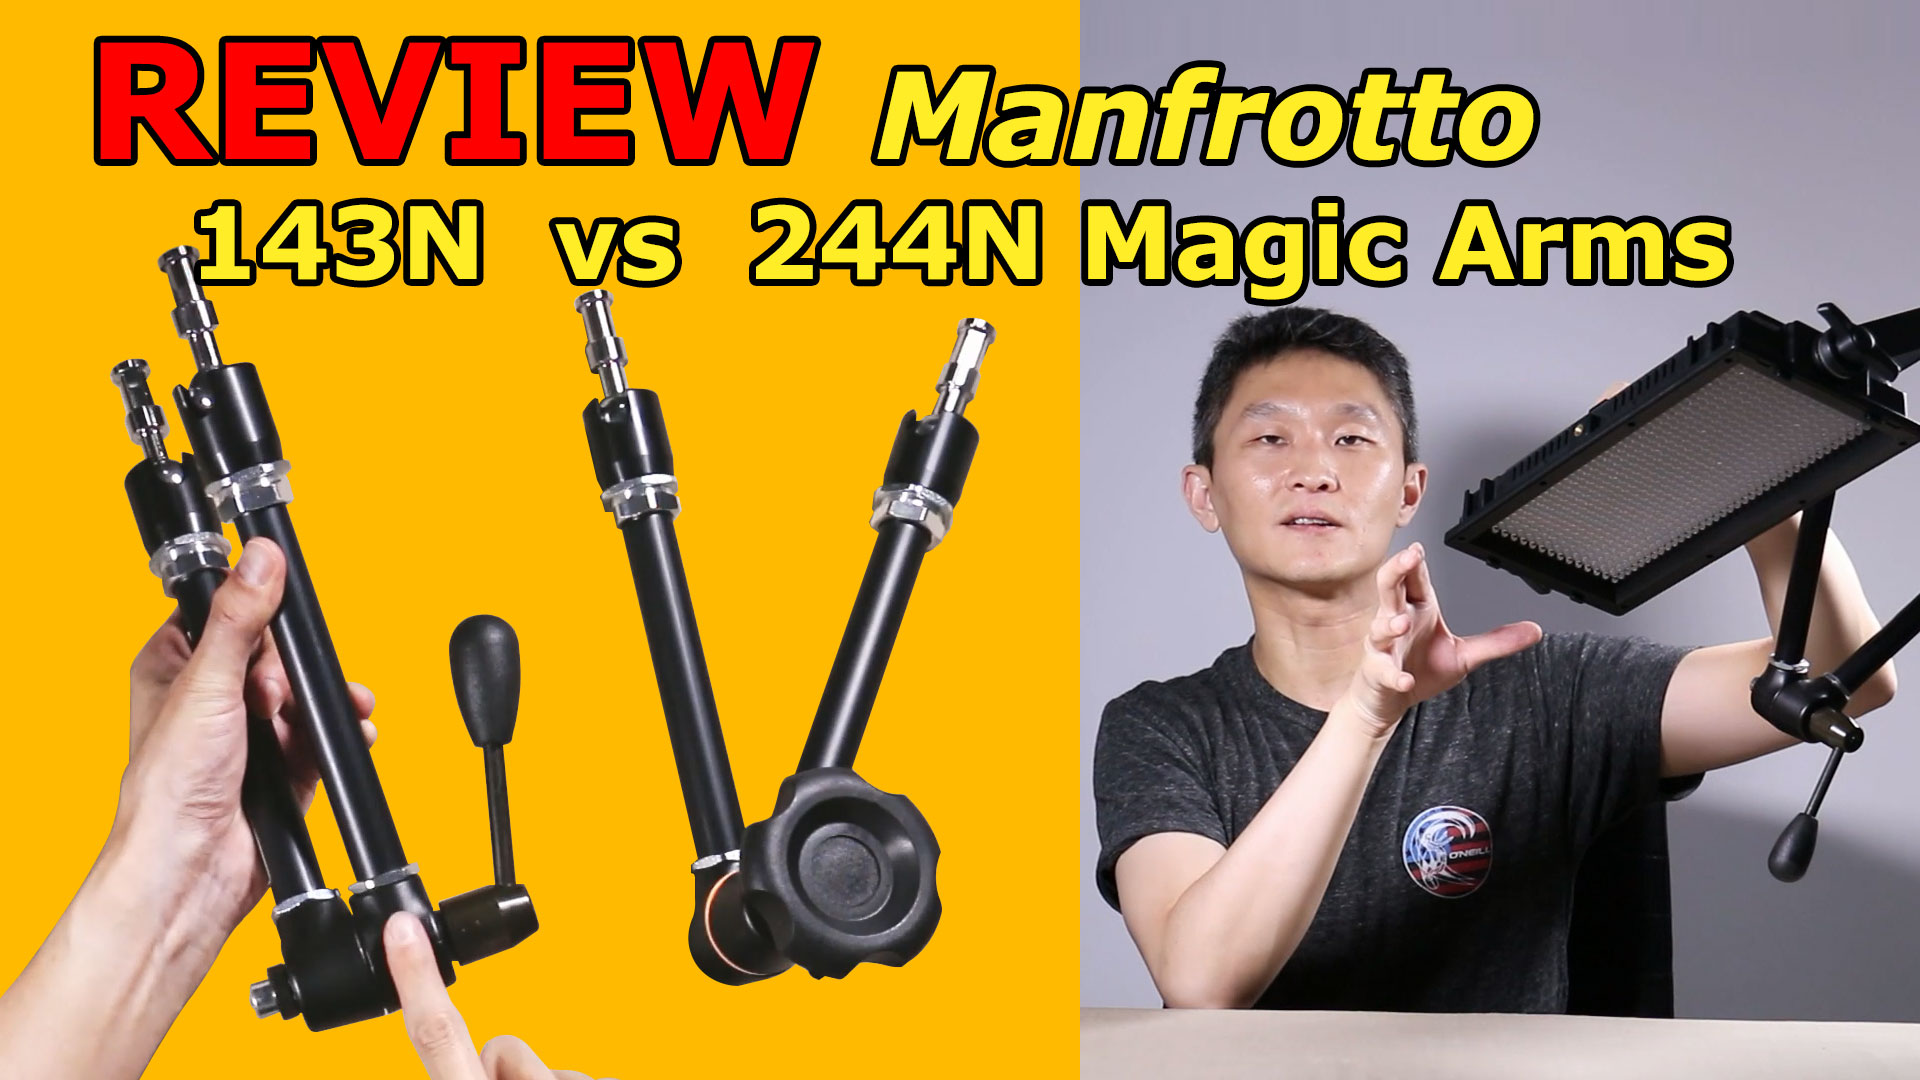 Manfrotto 143N & 244N - Magic arms